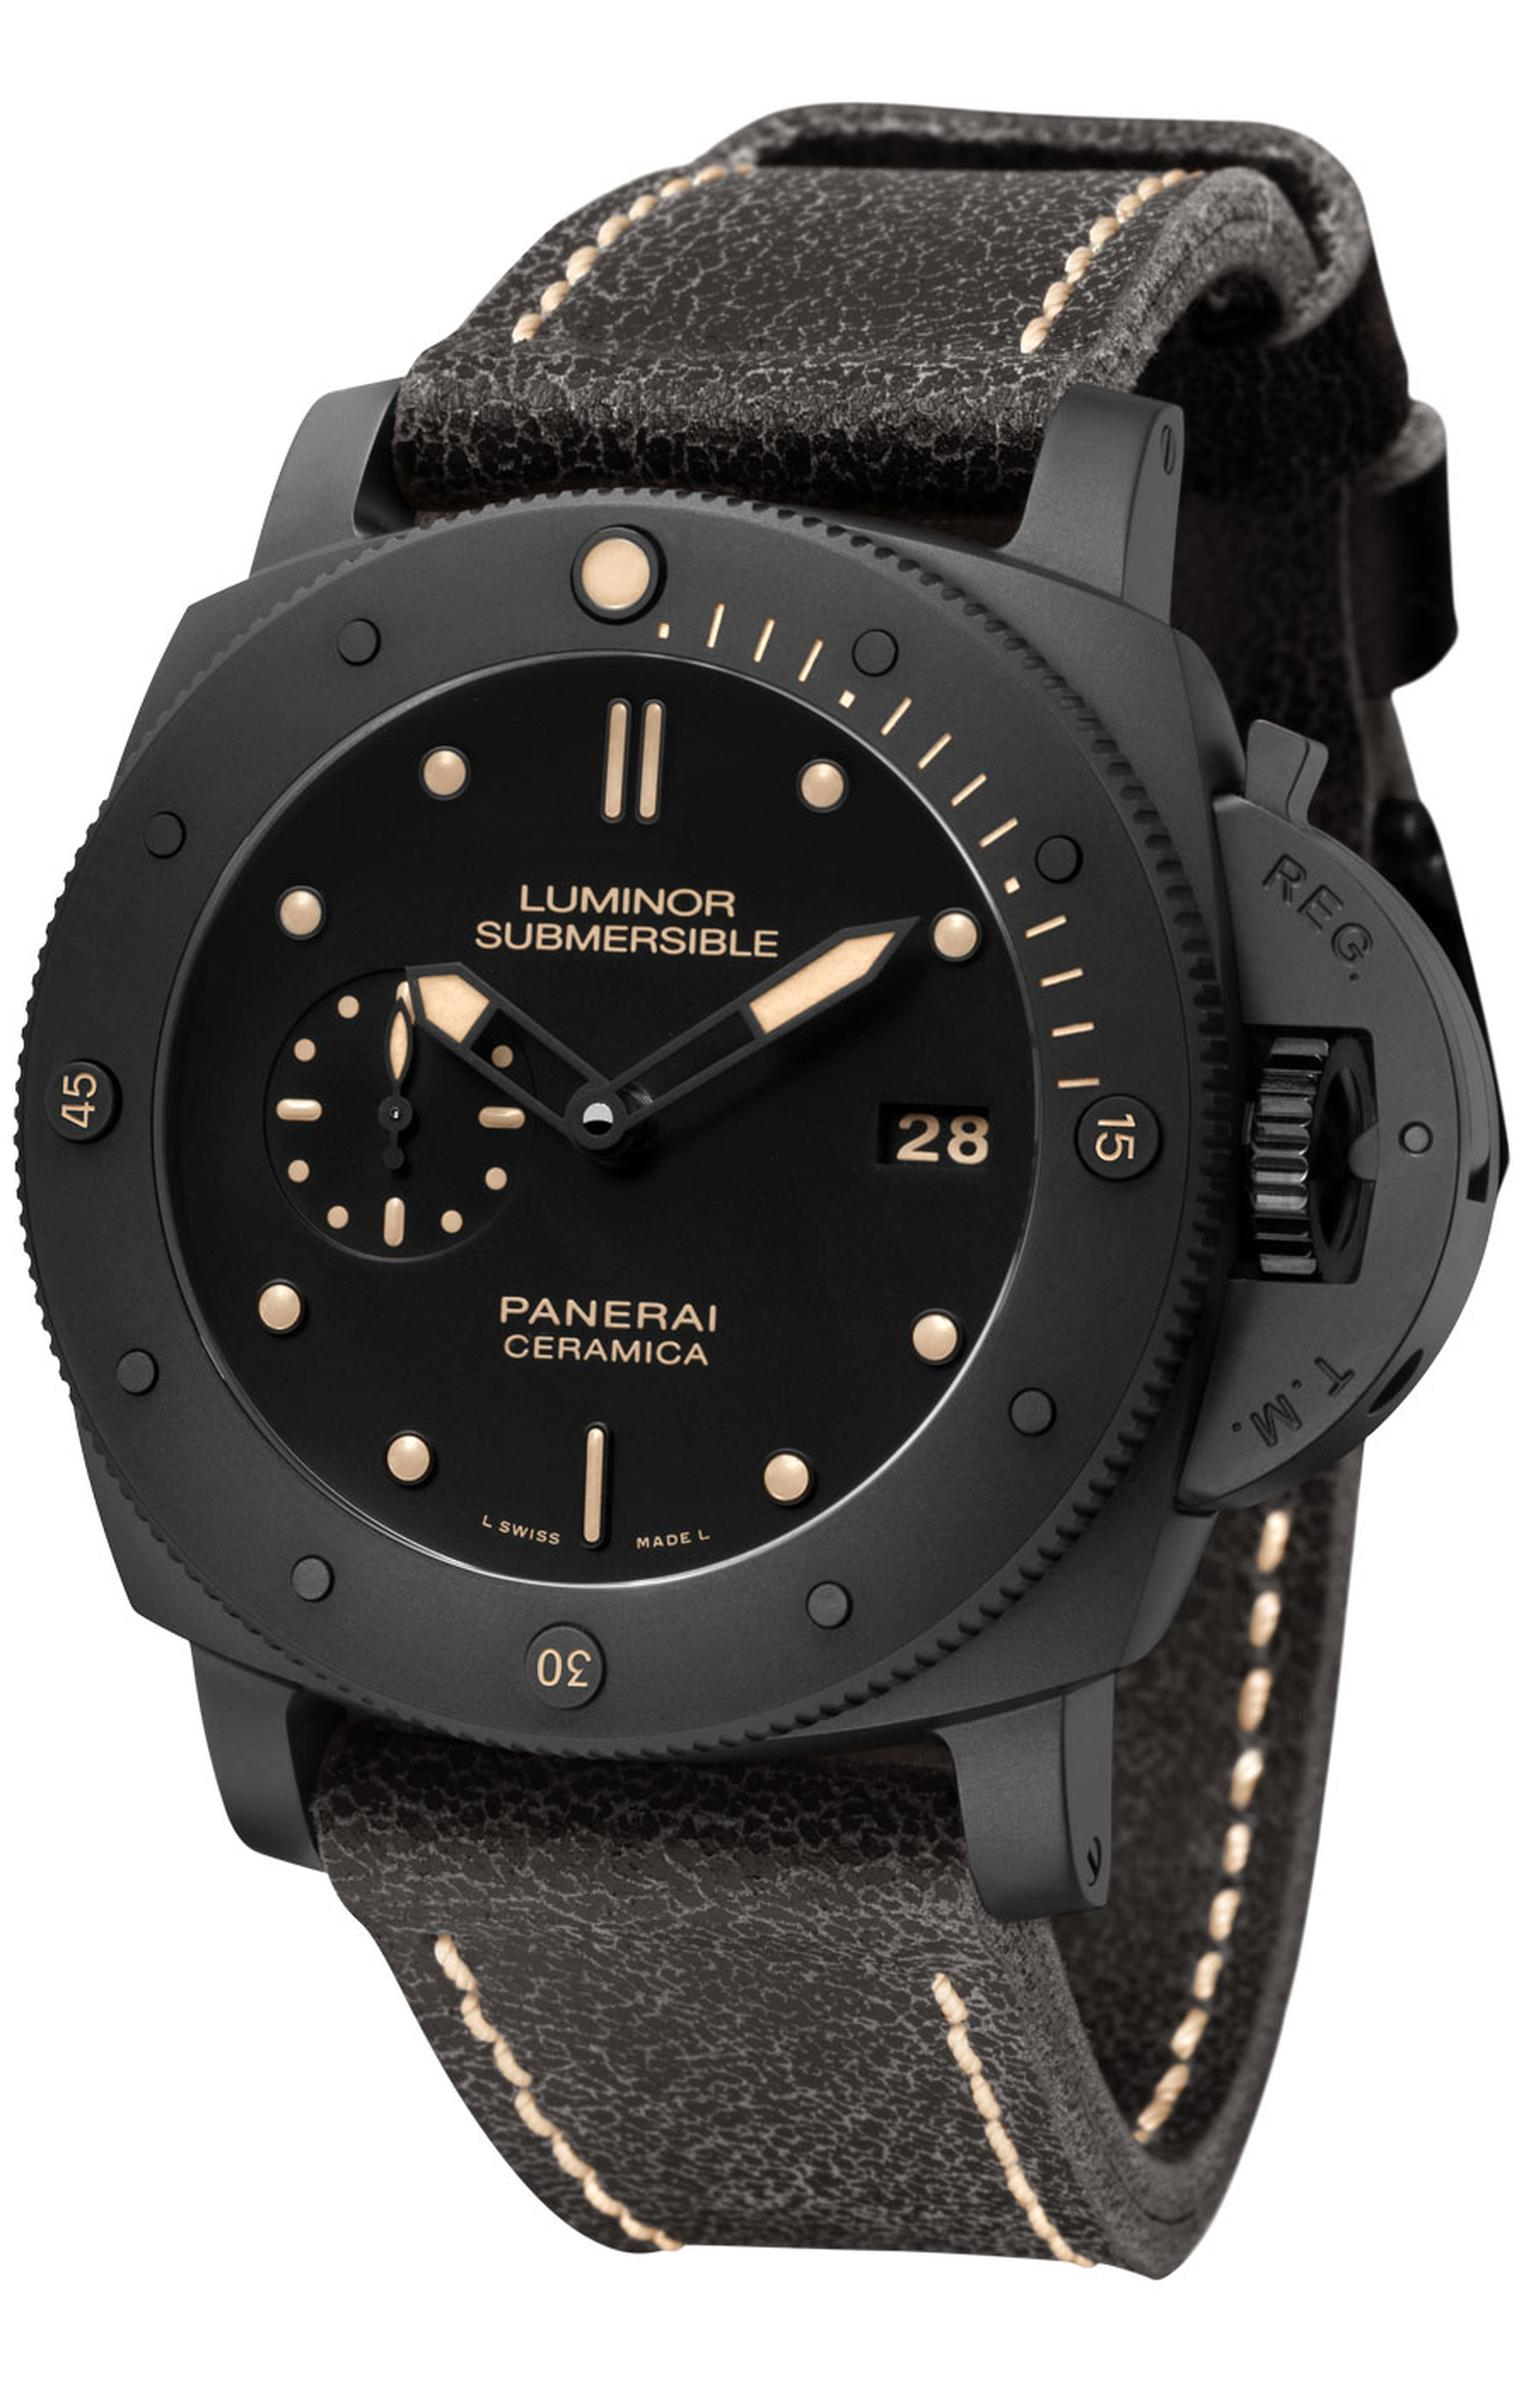 Officine-Panerai-PAM00508-press.jpg